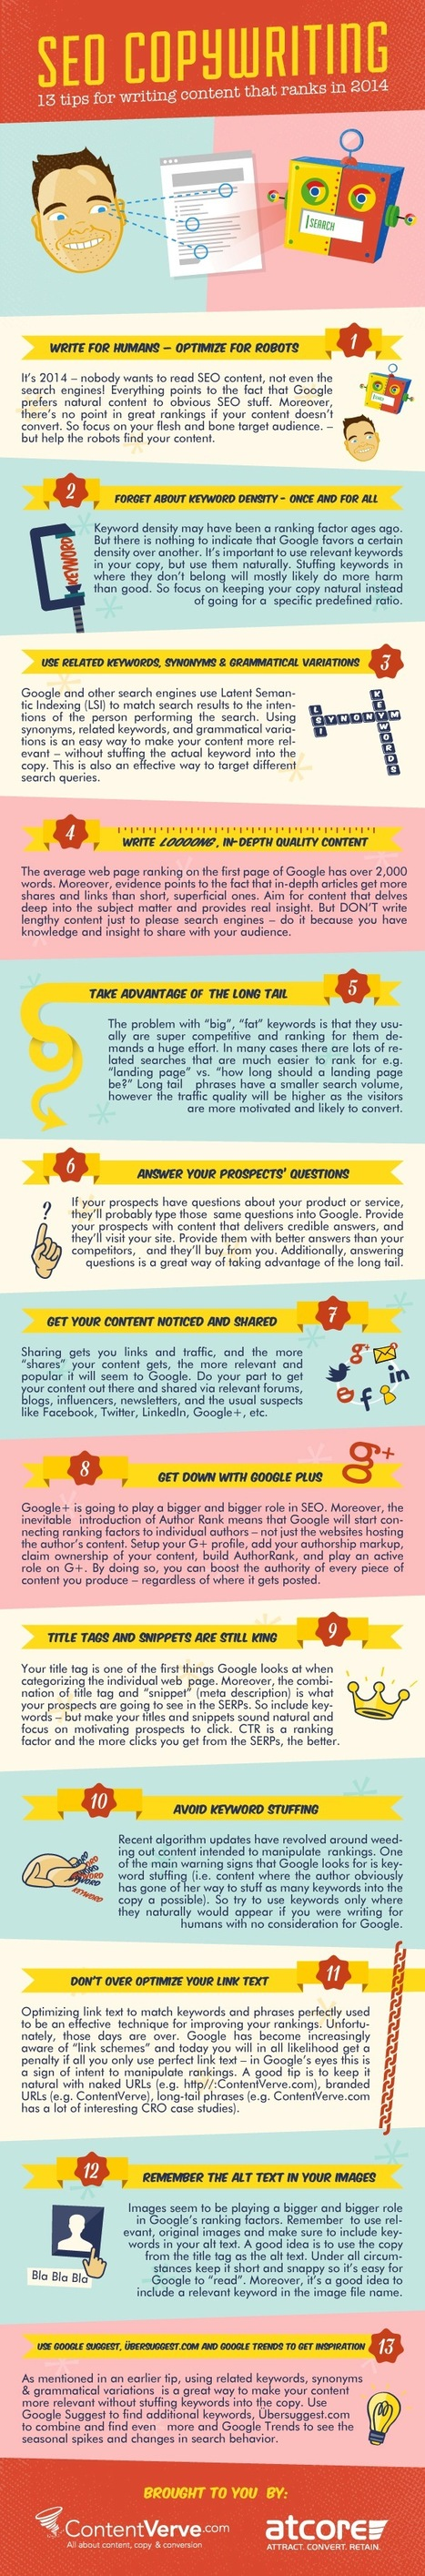 SEO Copywriting – 13 Tips for Writing Content that Ranks in 2014 (Infographic) | WordPress | Scoop.it